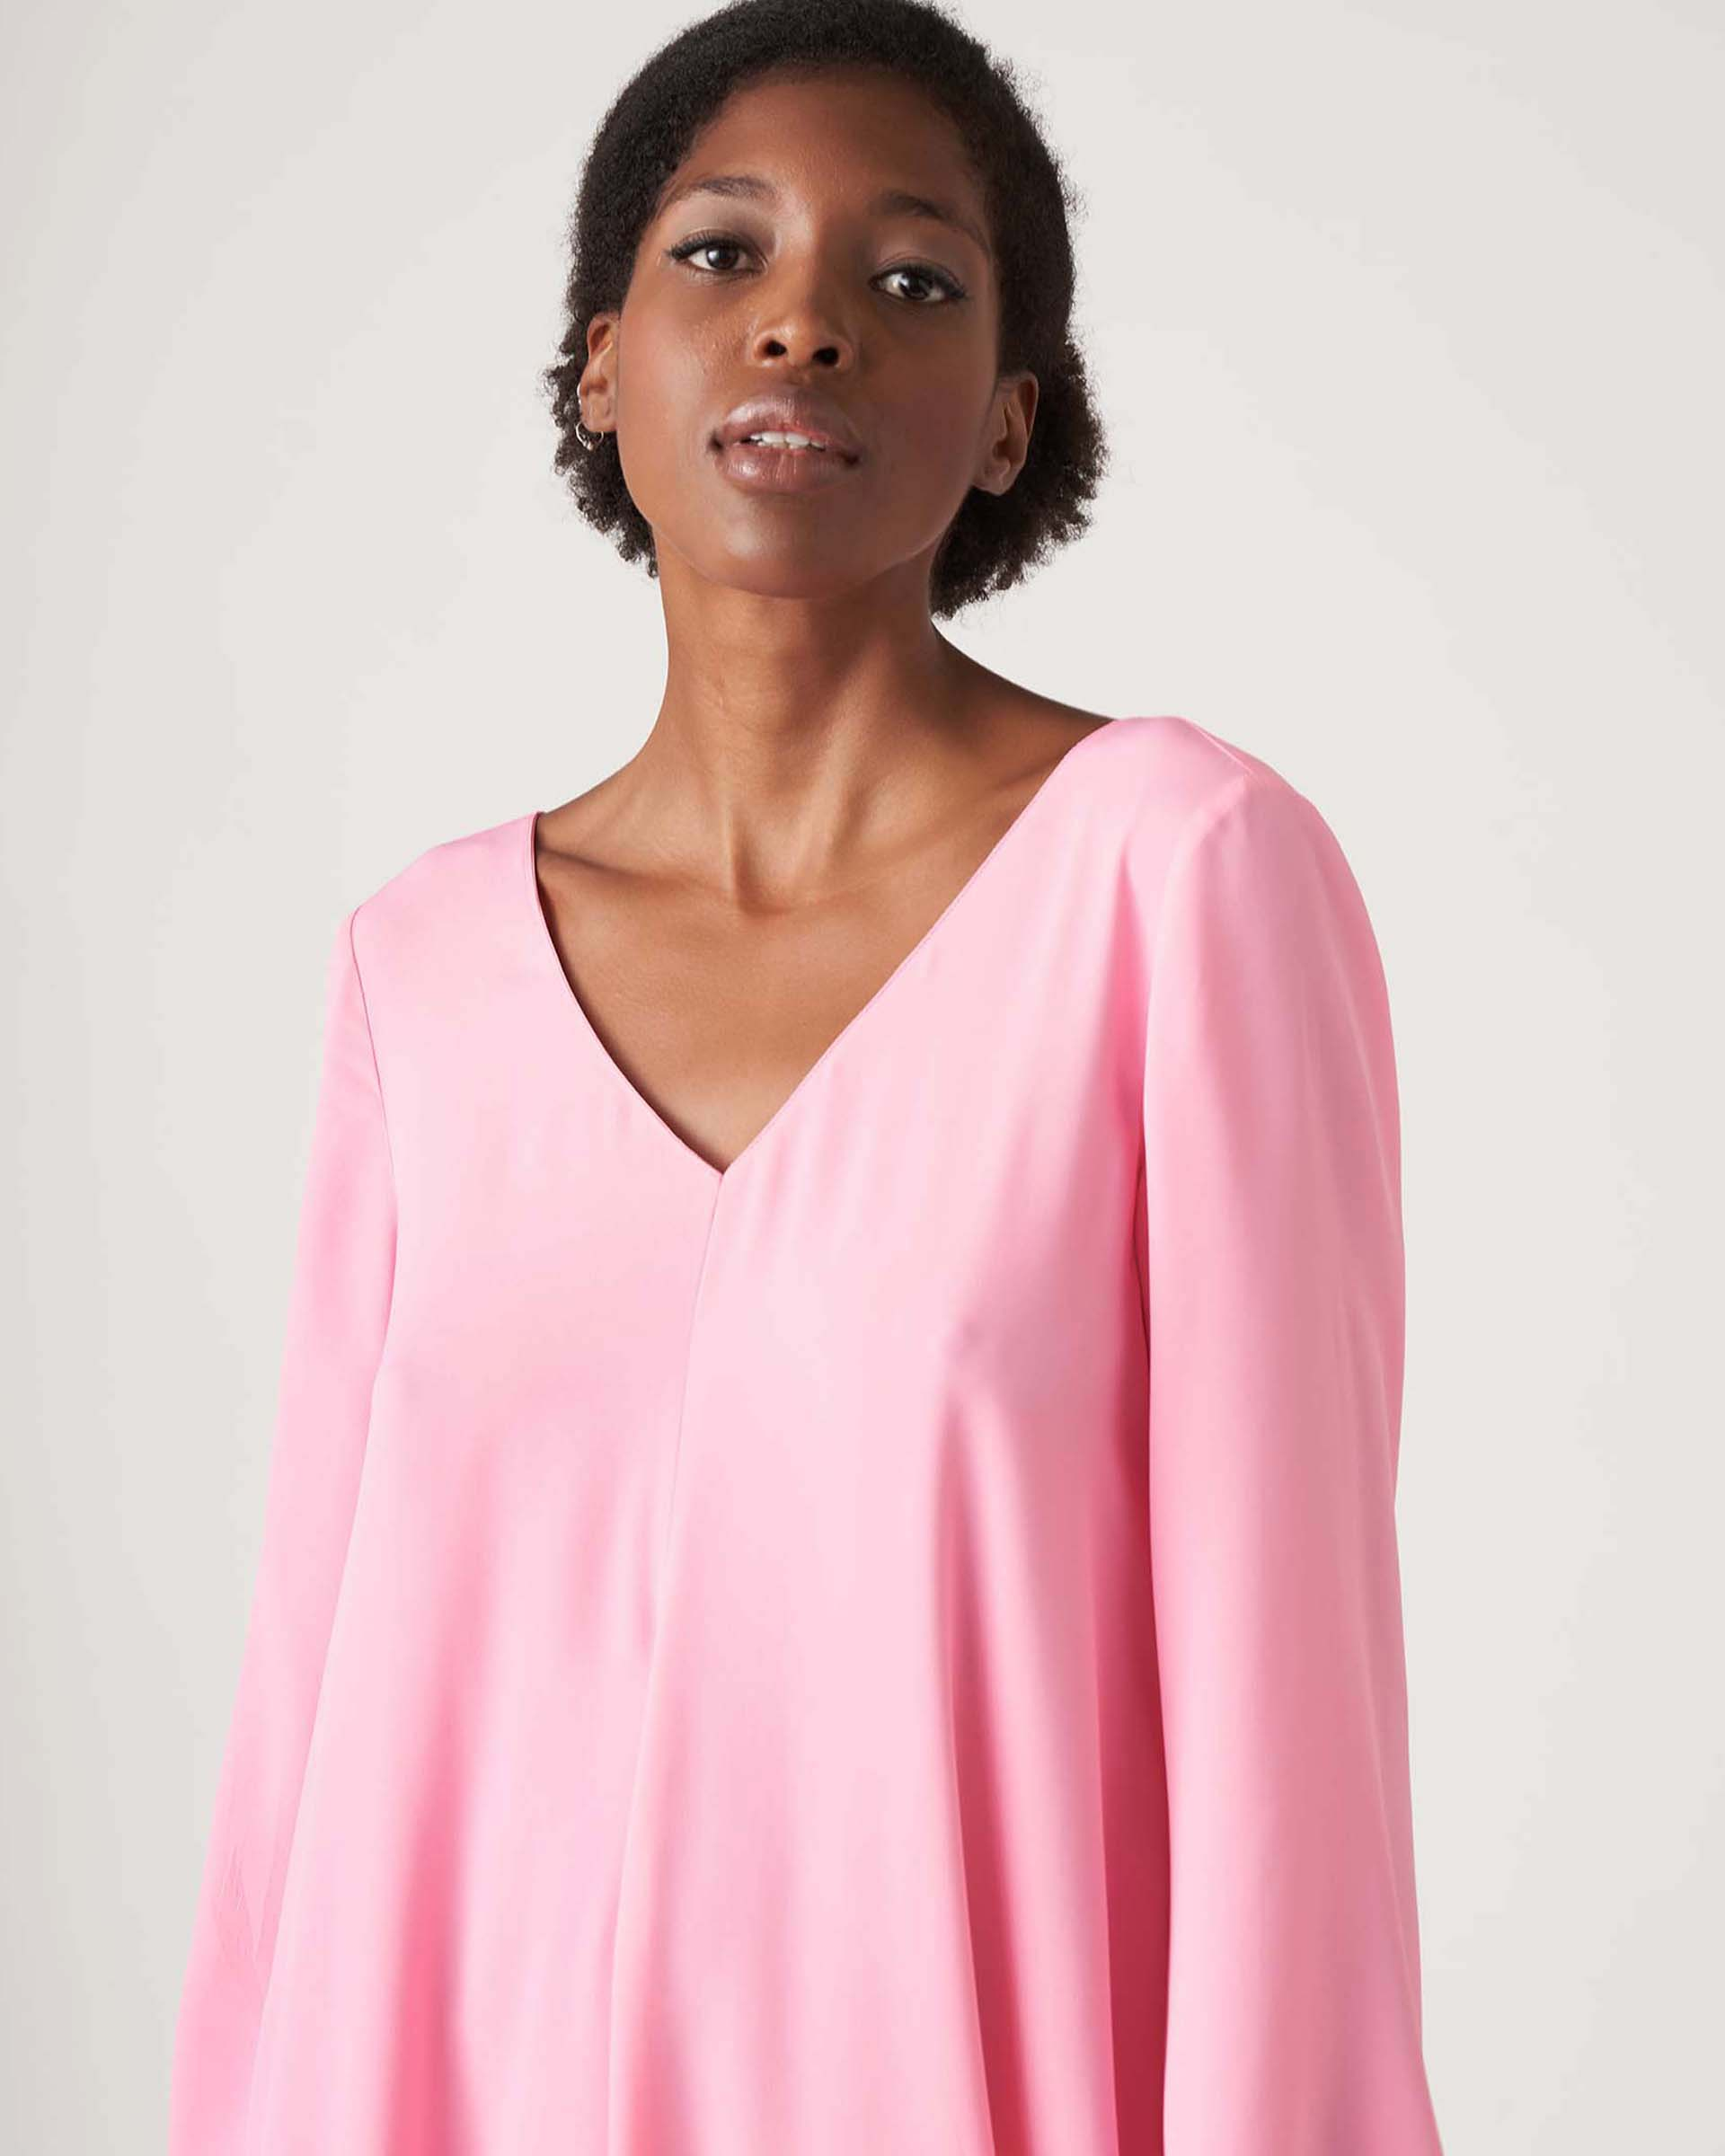 V-neck tunic dress in pale pink crepe JUCCA |  | J3317010358